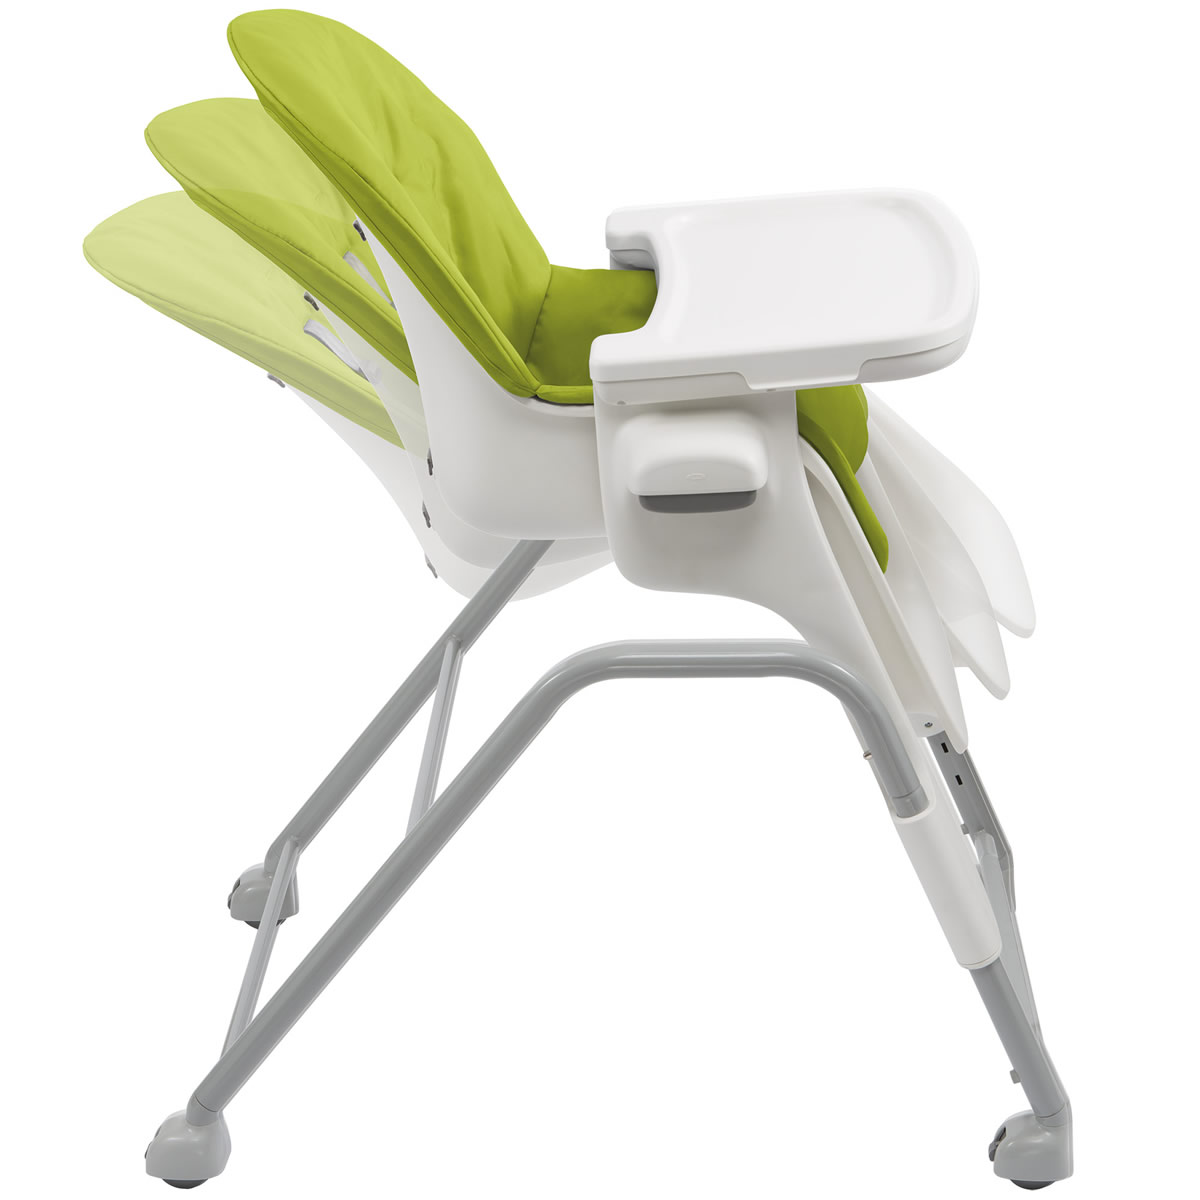 Amazing Review: OXO Seedling High Chair